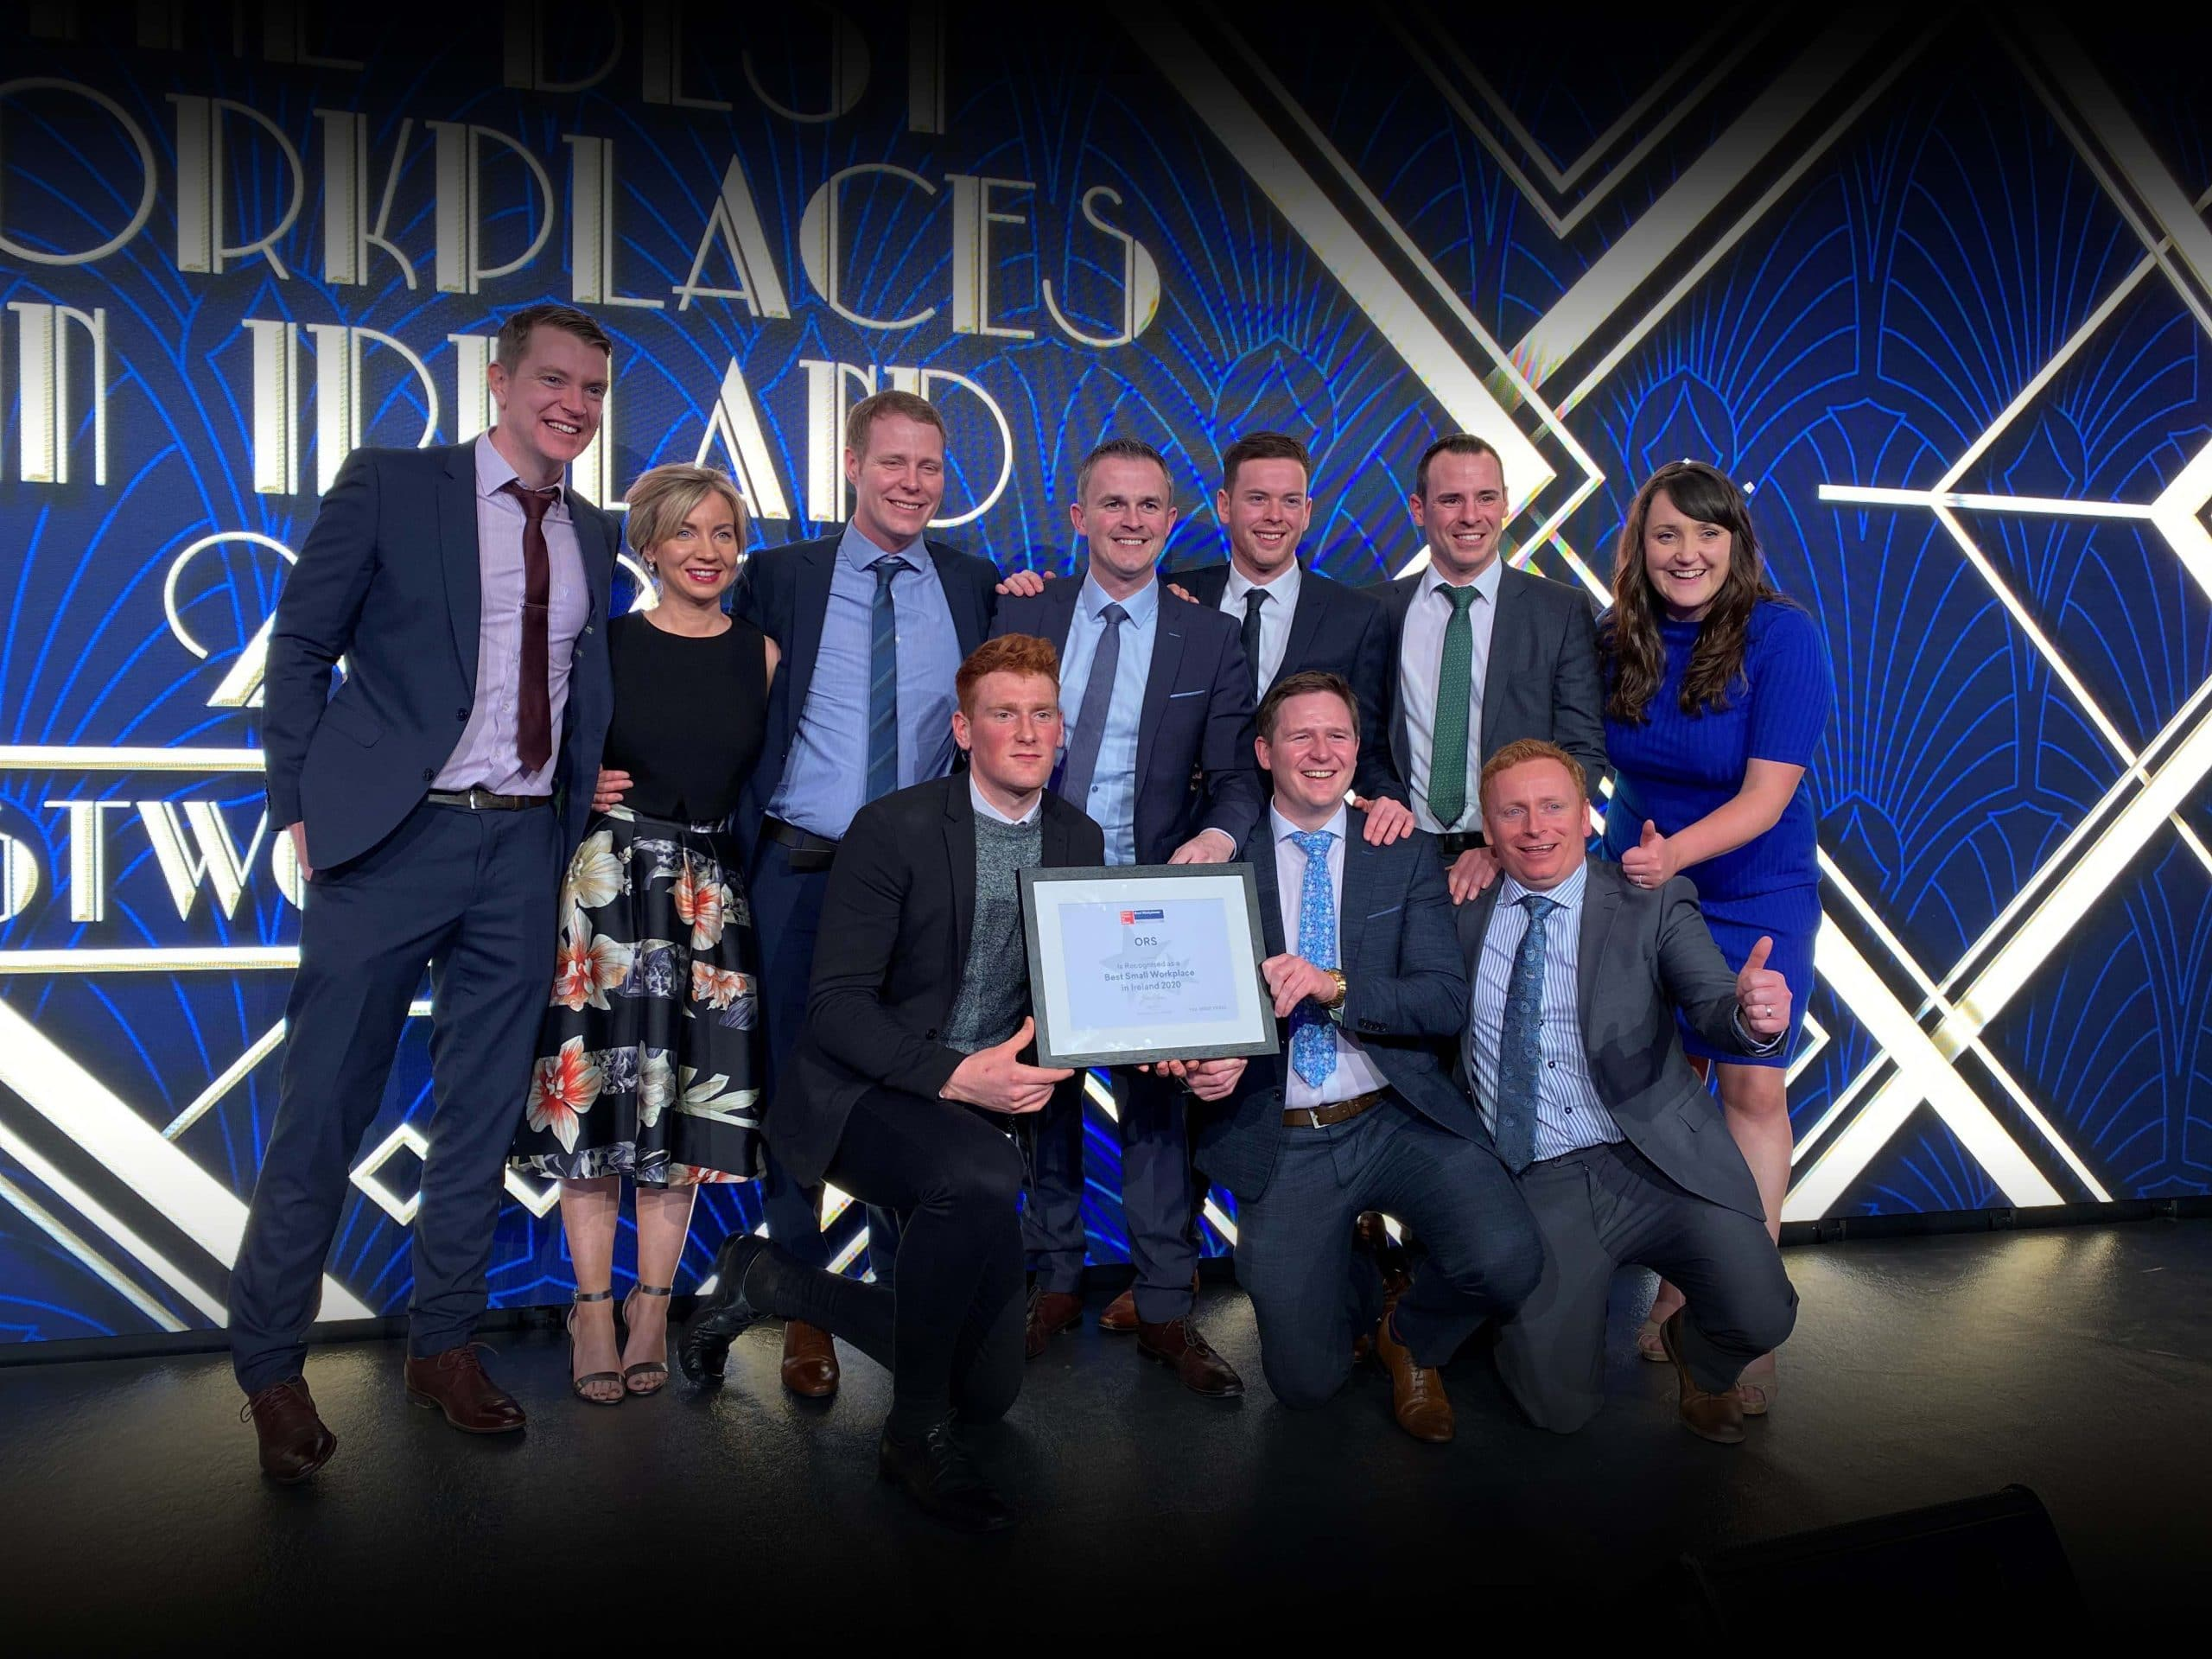 ORS IS ONE OF THE BEST WORKPLACES IN IRELAND FOR THE 2ND CONSECUTIVE YEAR